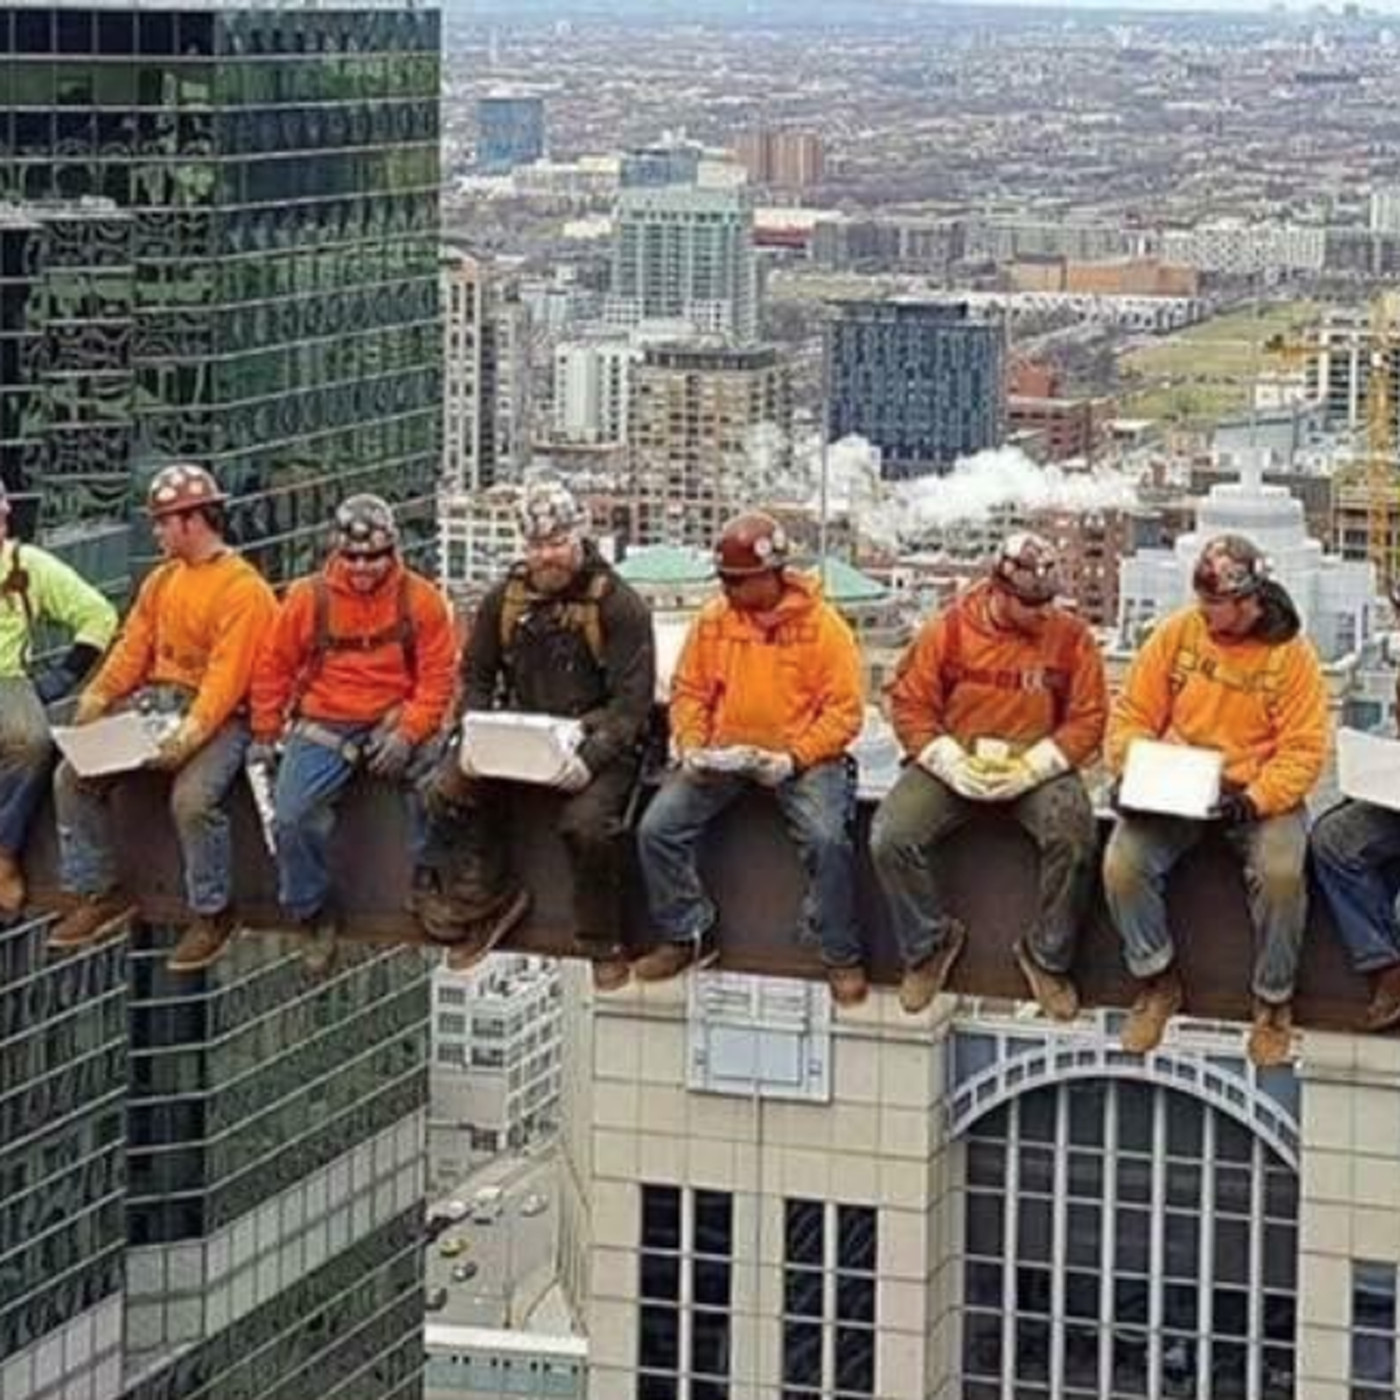 chicago iron workers recreate lunch atop a skyscraper photograph